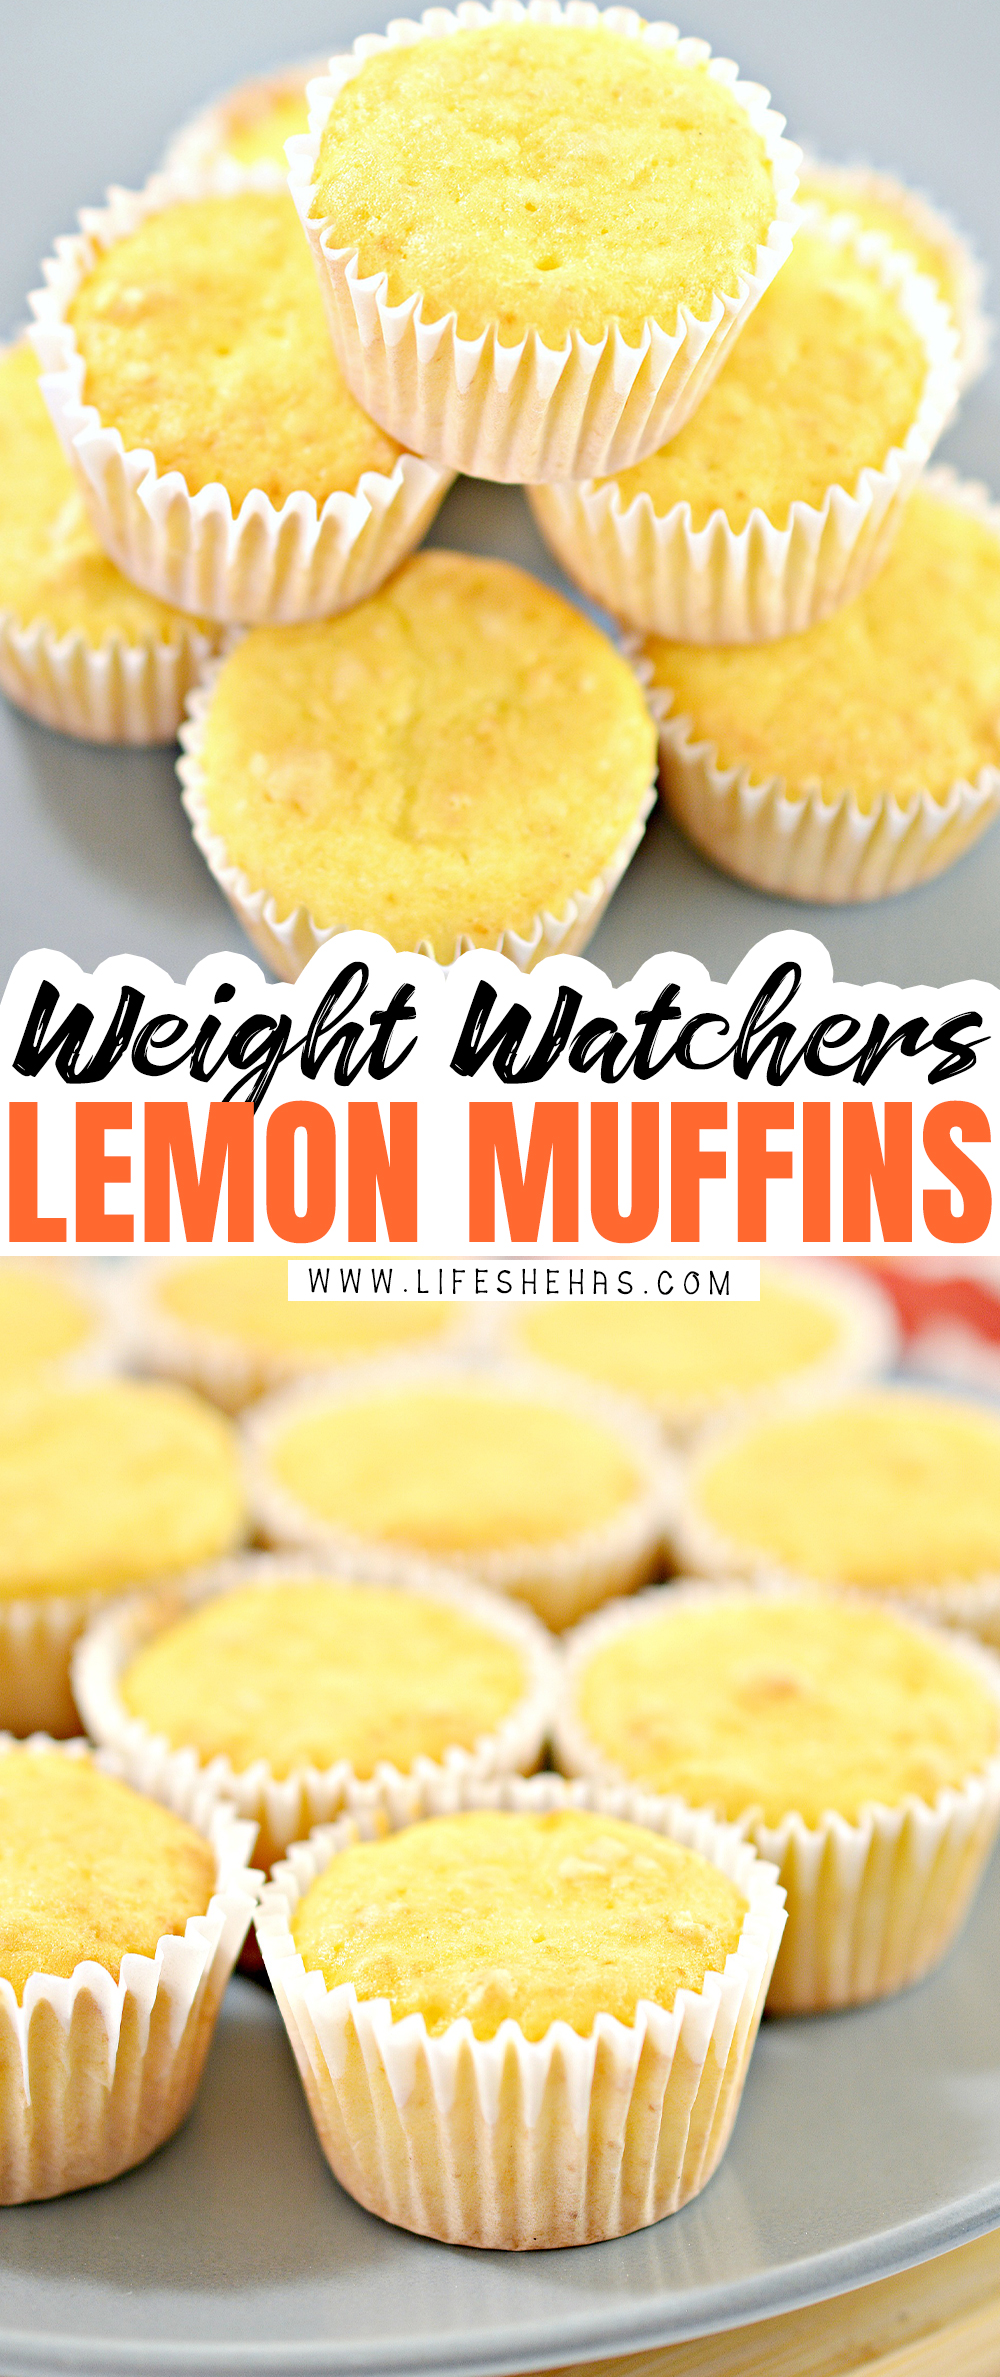 lemon weight watchers muffins recipe 1 points plus value or 2 smart points pin